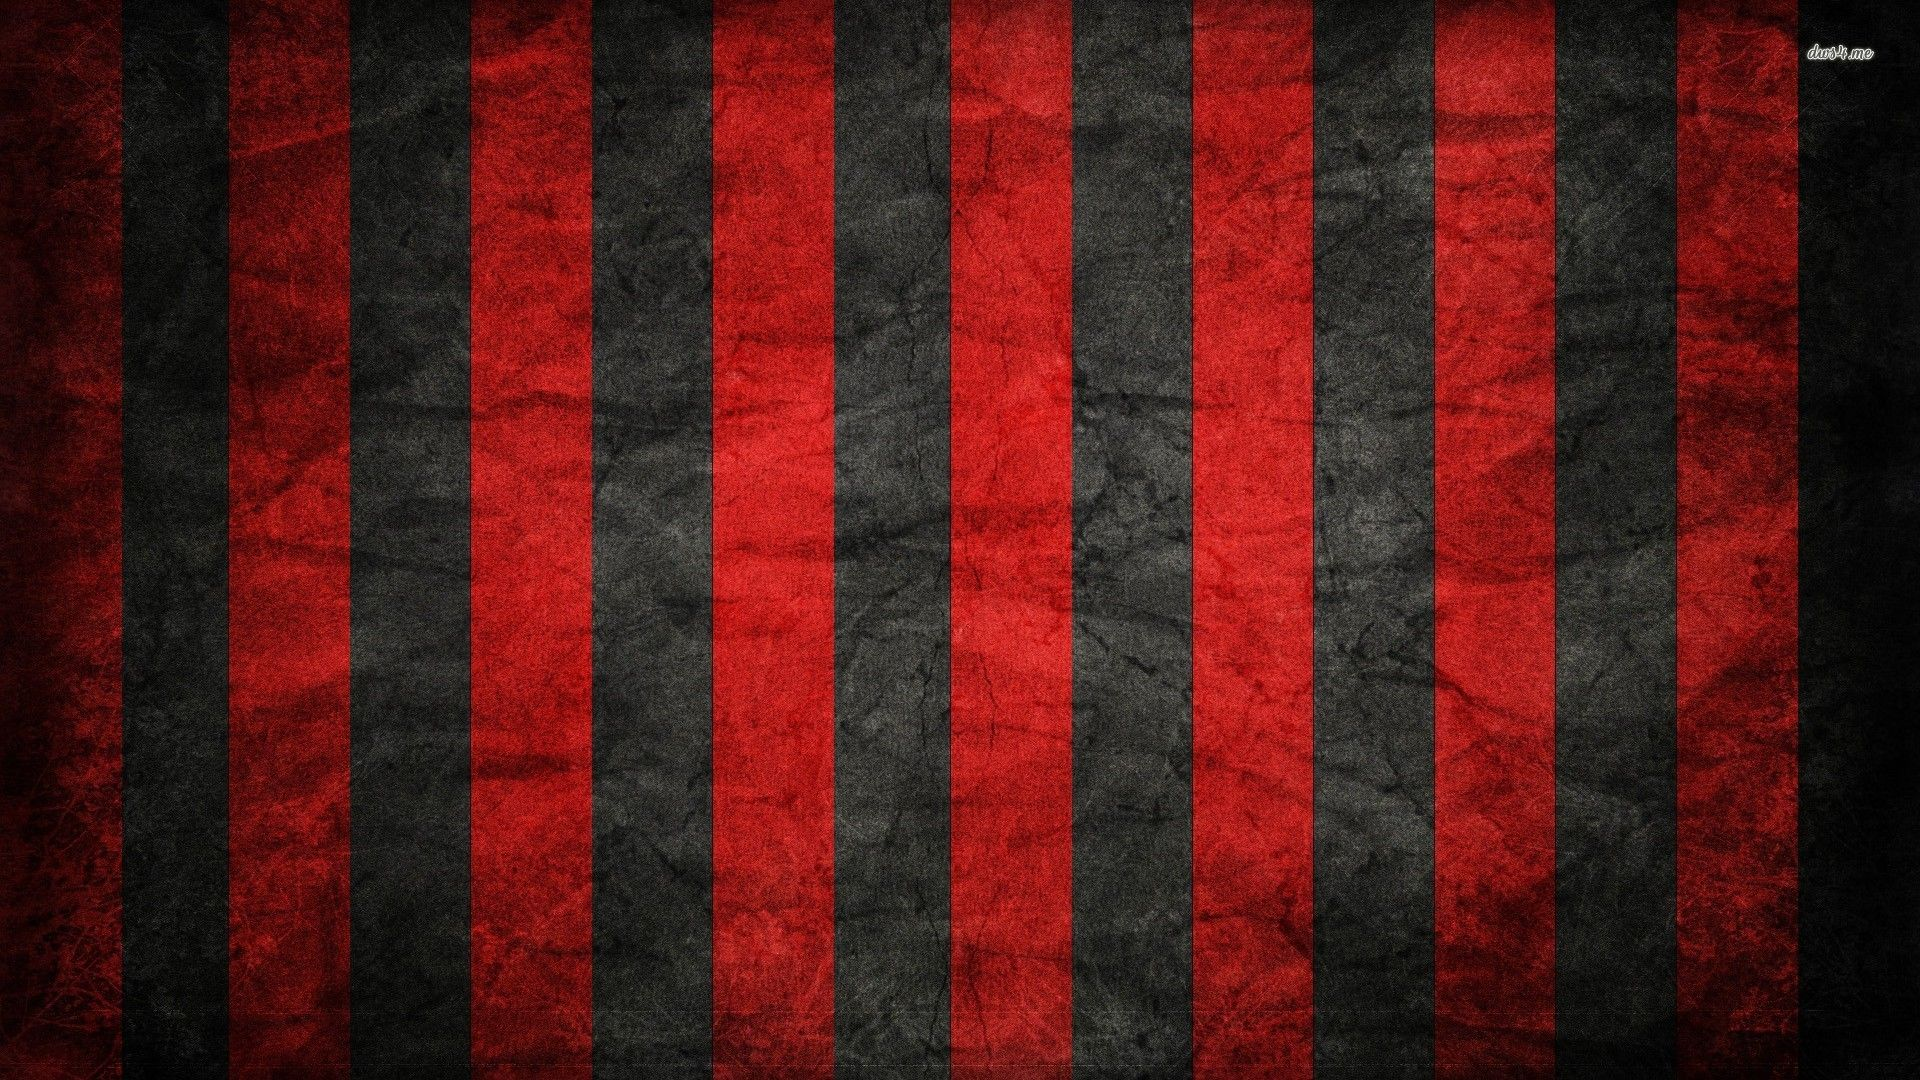 Black And Red Striped Wallpaper Hd Wallpapers And Pictures